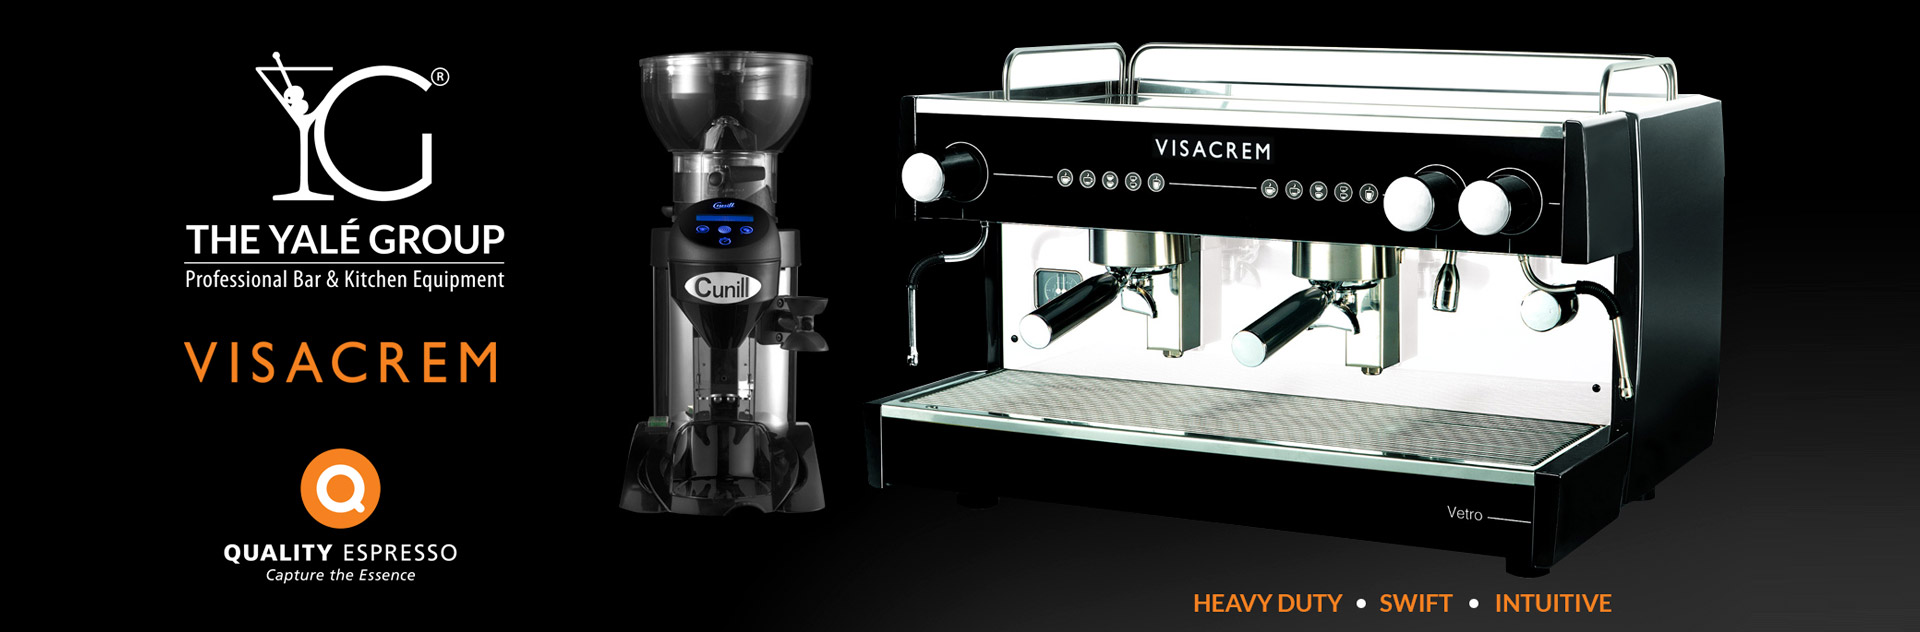 Visacrem Coffee Machine